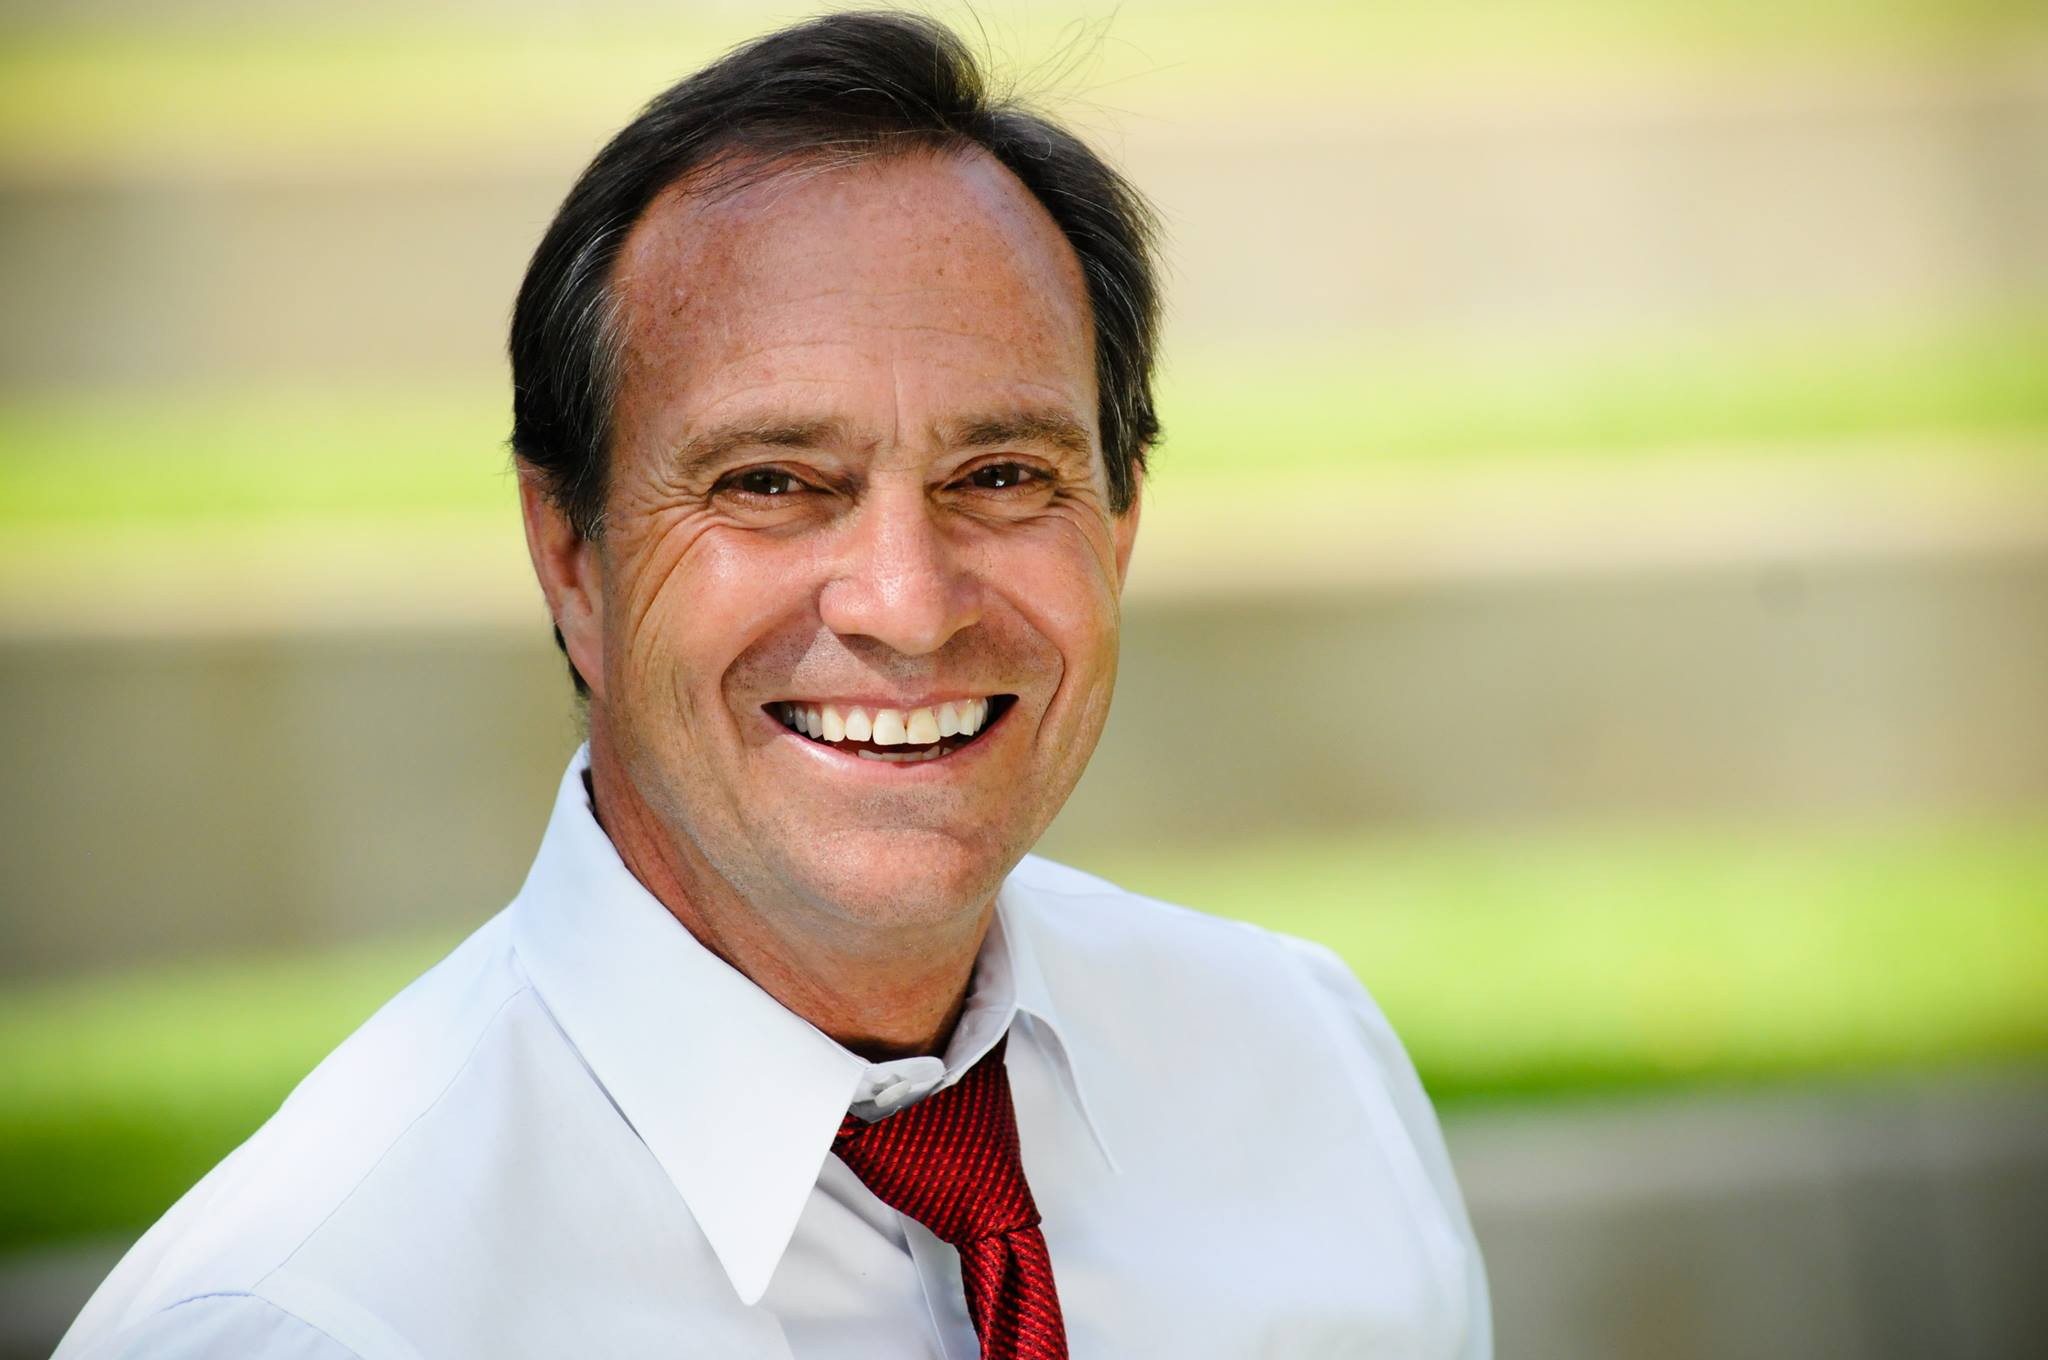 Image of Colorado Congressman Ed Perlmutter (Facebook Profile Image)